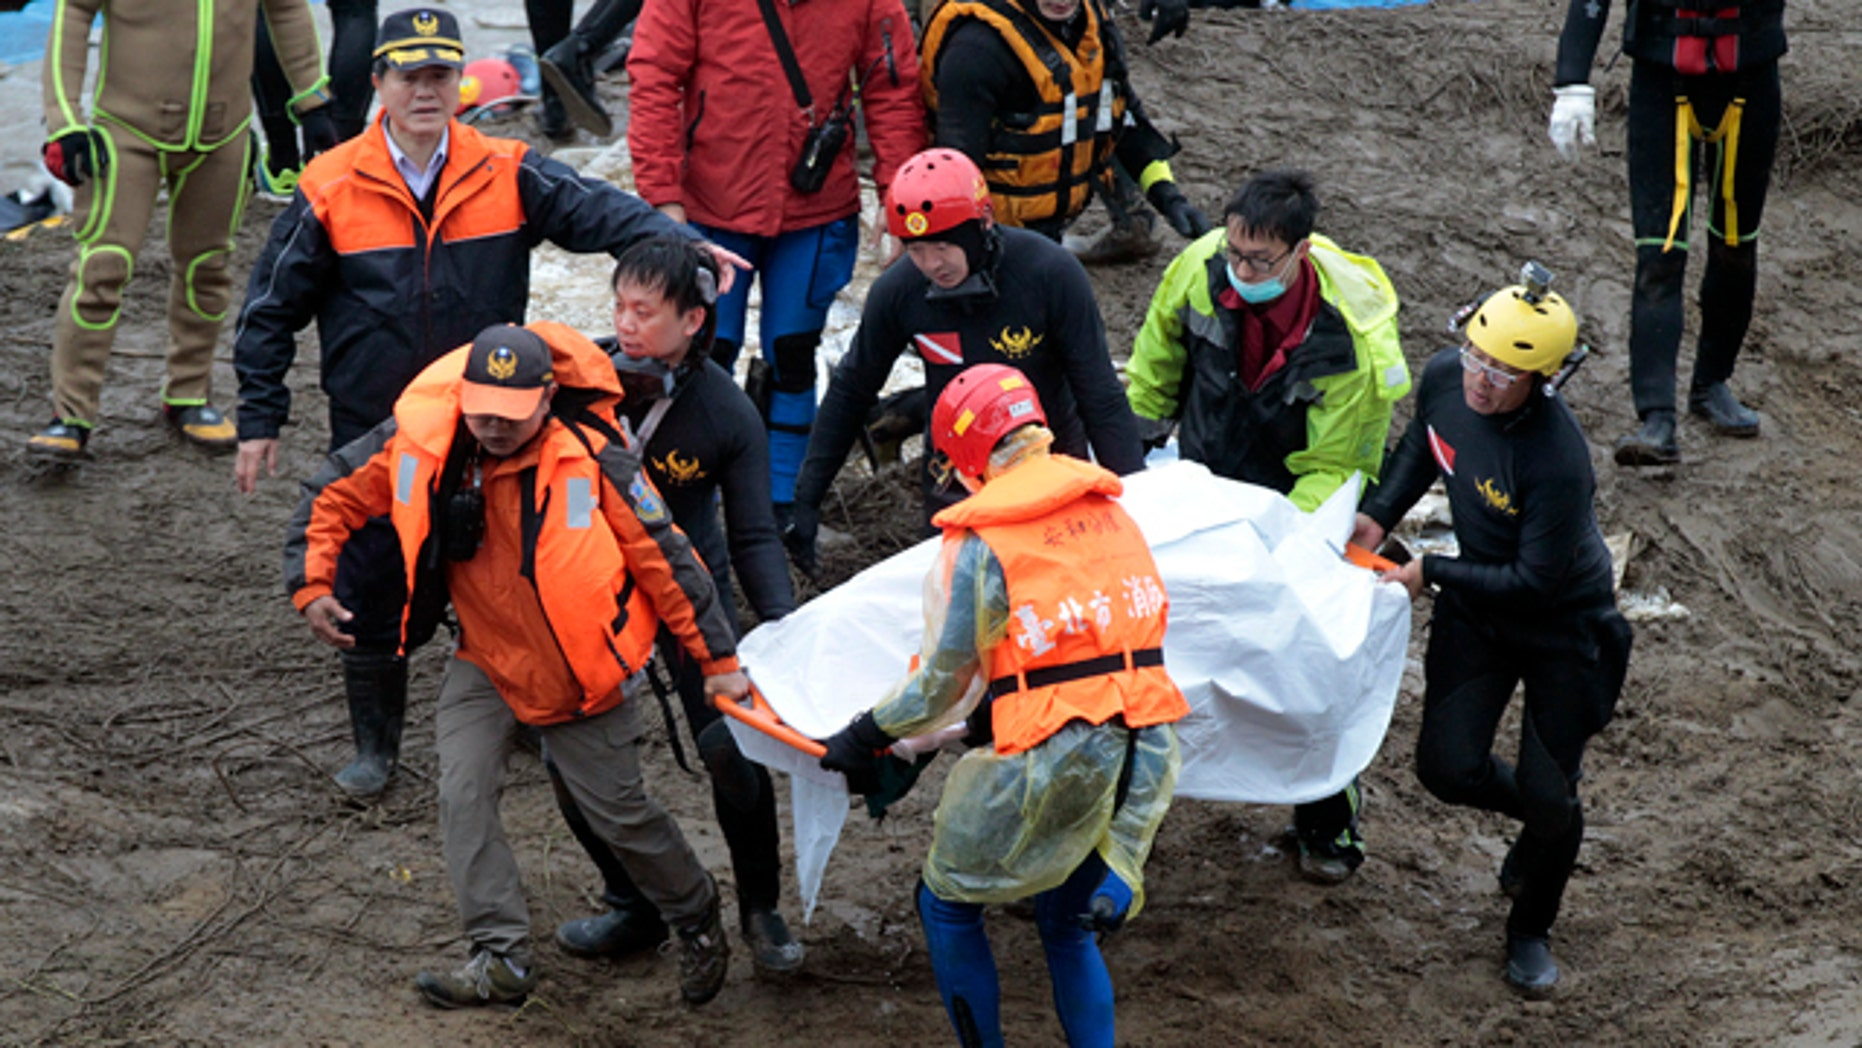 Feb. 6, 2015: Search and rescue divers carry a recovered body at the site of a commercial plane crash in Taipei, Taiwan. TransAsia Airways Flight 235 with 58 people aboard clipped a bridge shortly after takeoff and crashed into a river in the island's capital of Taipei on Wednesday morning. (AP Photo/Wally Santana)